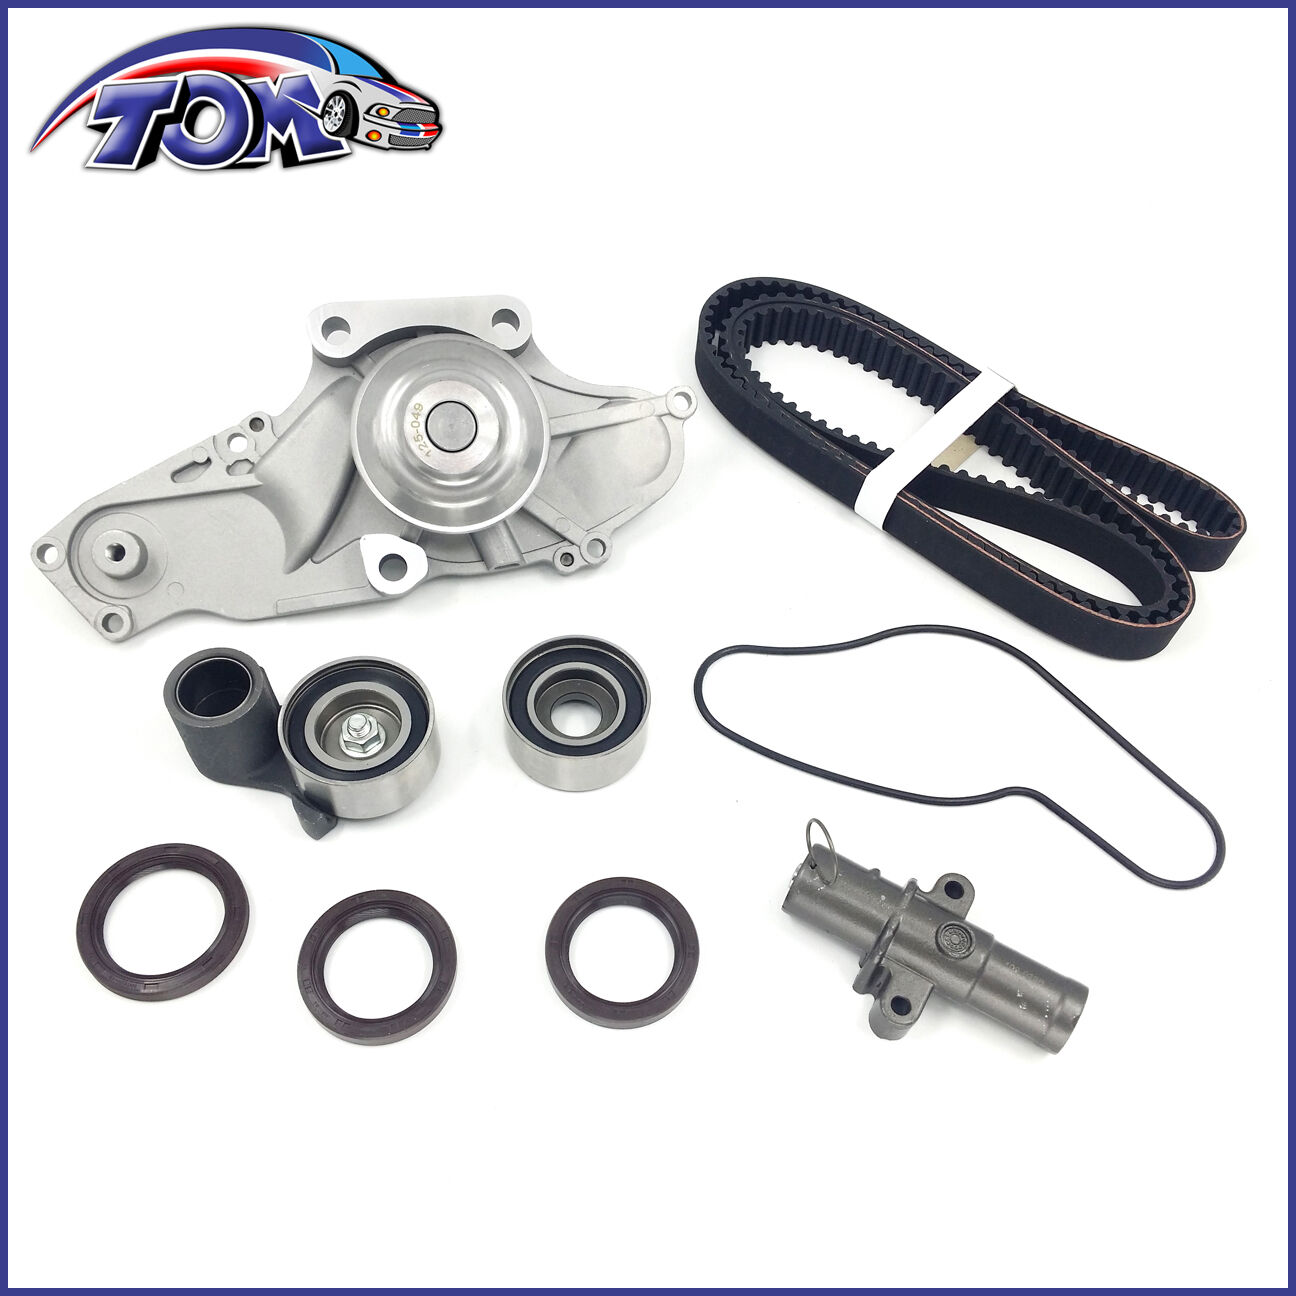 Brand New Timing Belt Kit W Water Pump For Honda Acura Saturn 30 Vue Change 32 37 1 Of 8only 5 Available